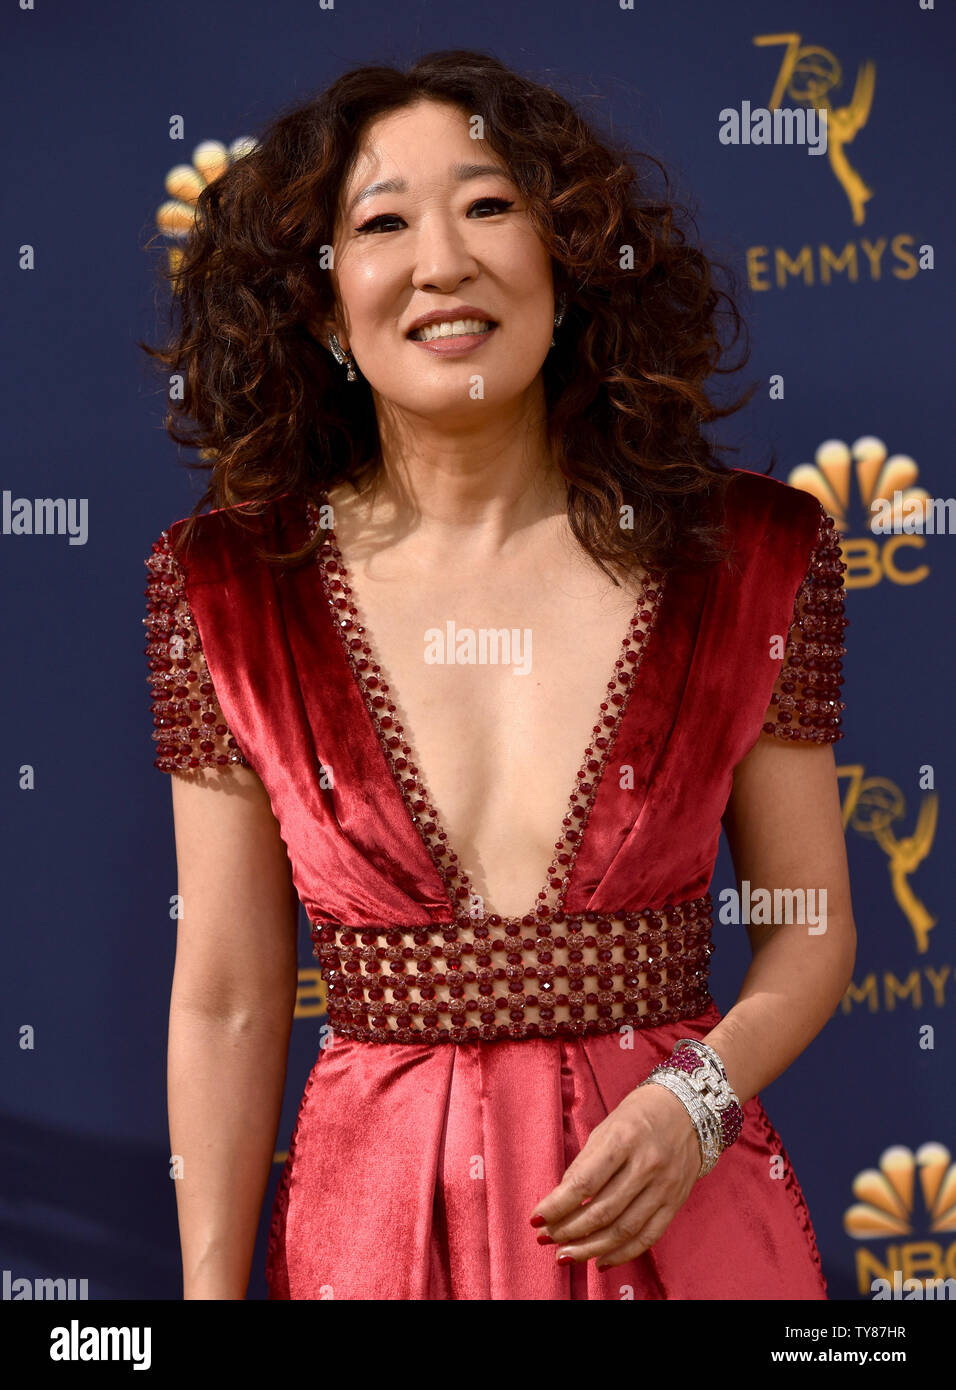 Actor Sandra Oh attends the 70th annual Primetime Emmy Award at the Microsoft Theater in downtown Los Angeles on September 17, 2018.   Photo by Christine Chew/UPI Stock Photo